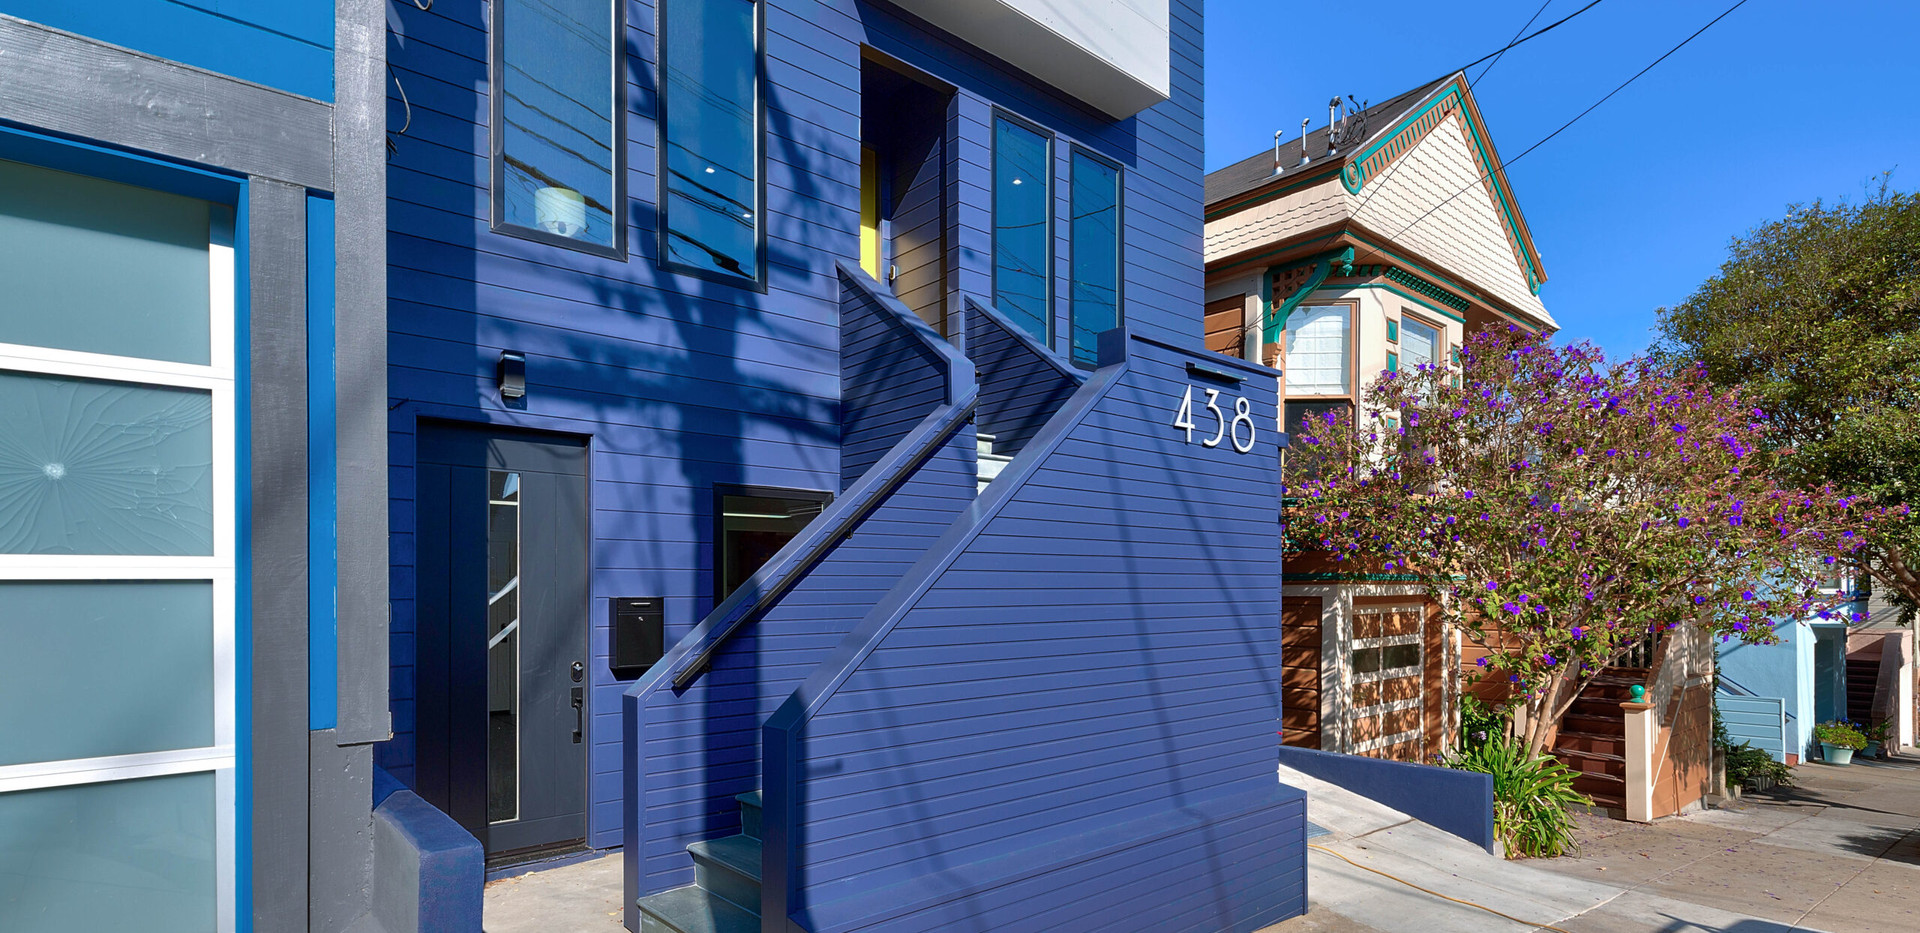 438-29th-St-San-Francisco-14-of-62-scale